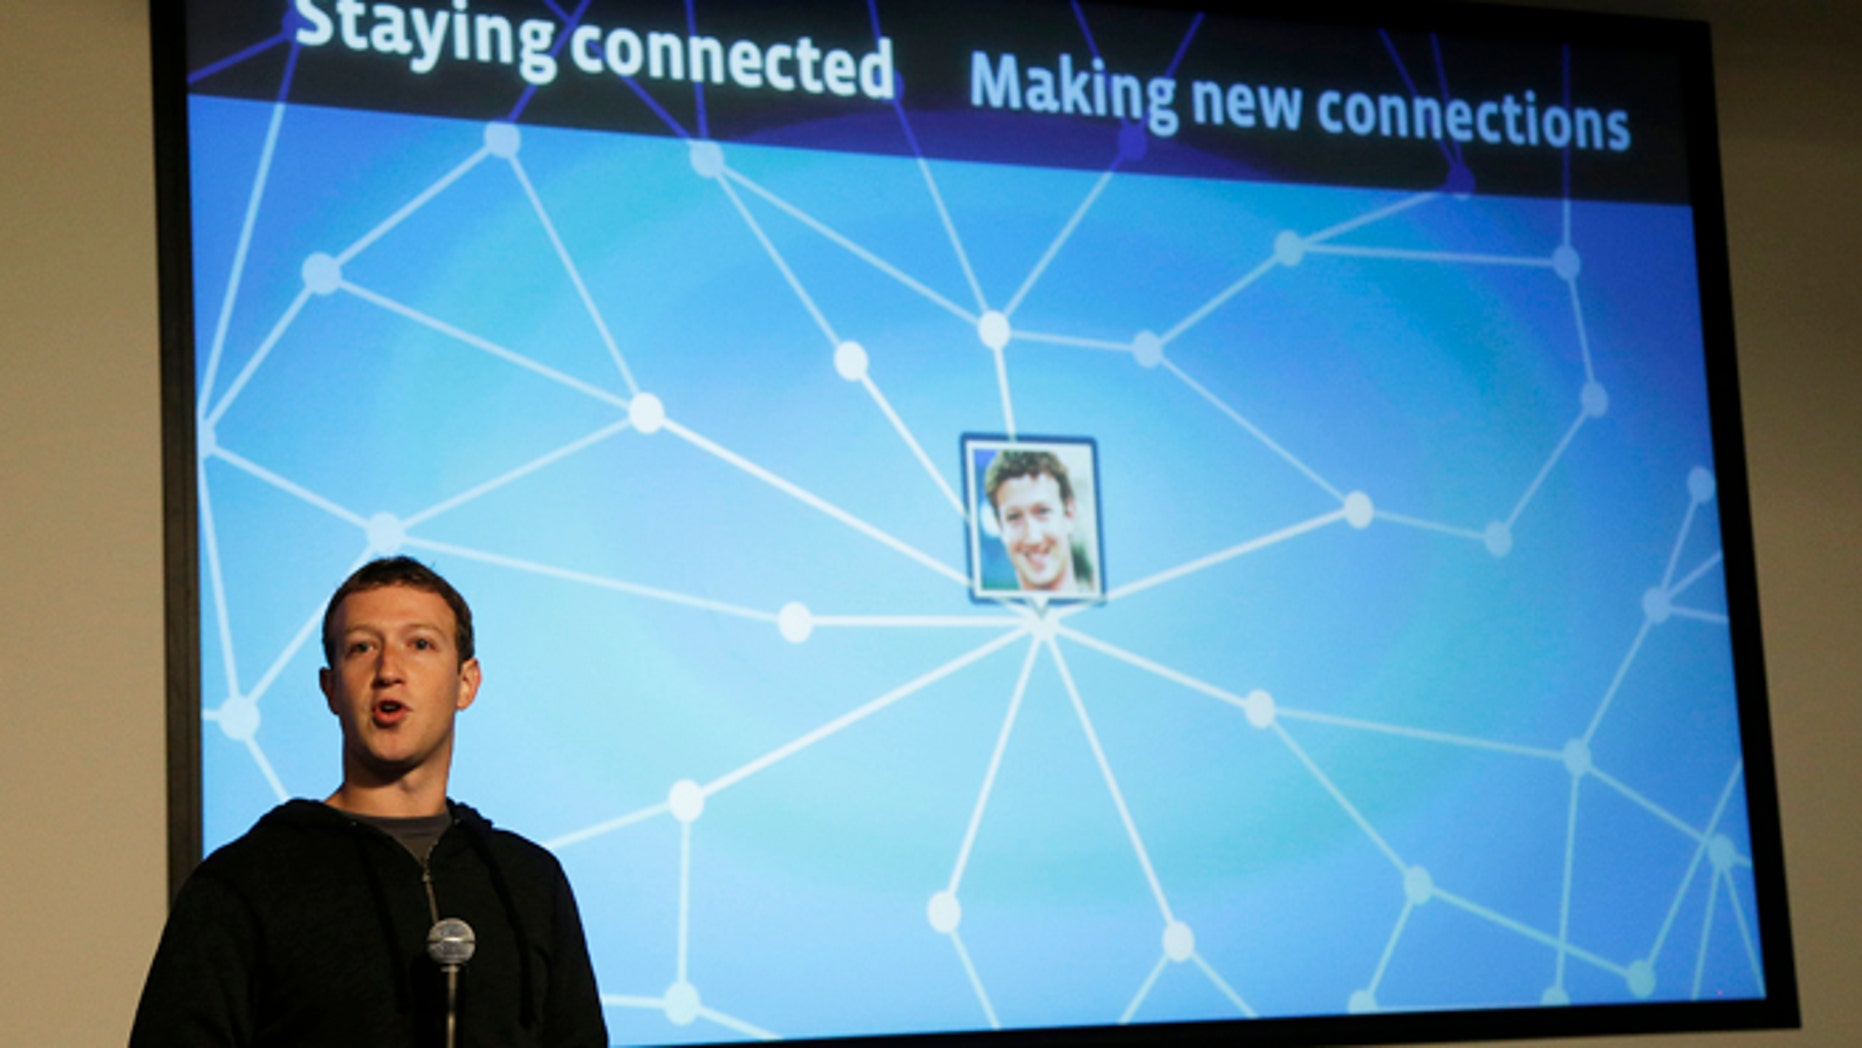 FILE: Jan. 15, 2013: Facebook CEO Mark Zuckerberg speaks about Facebook Graph Search at a Facebook headquarters in Menlo Park, Calif.